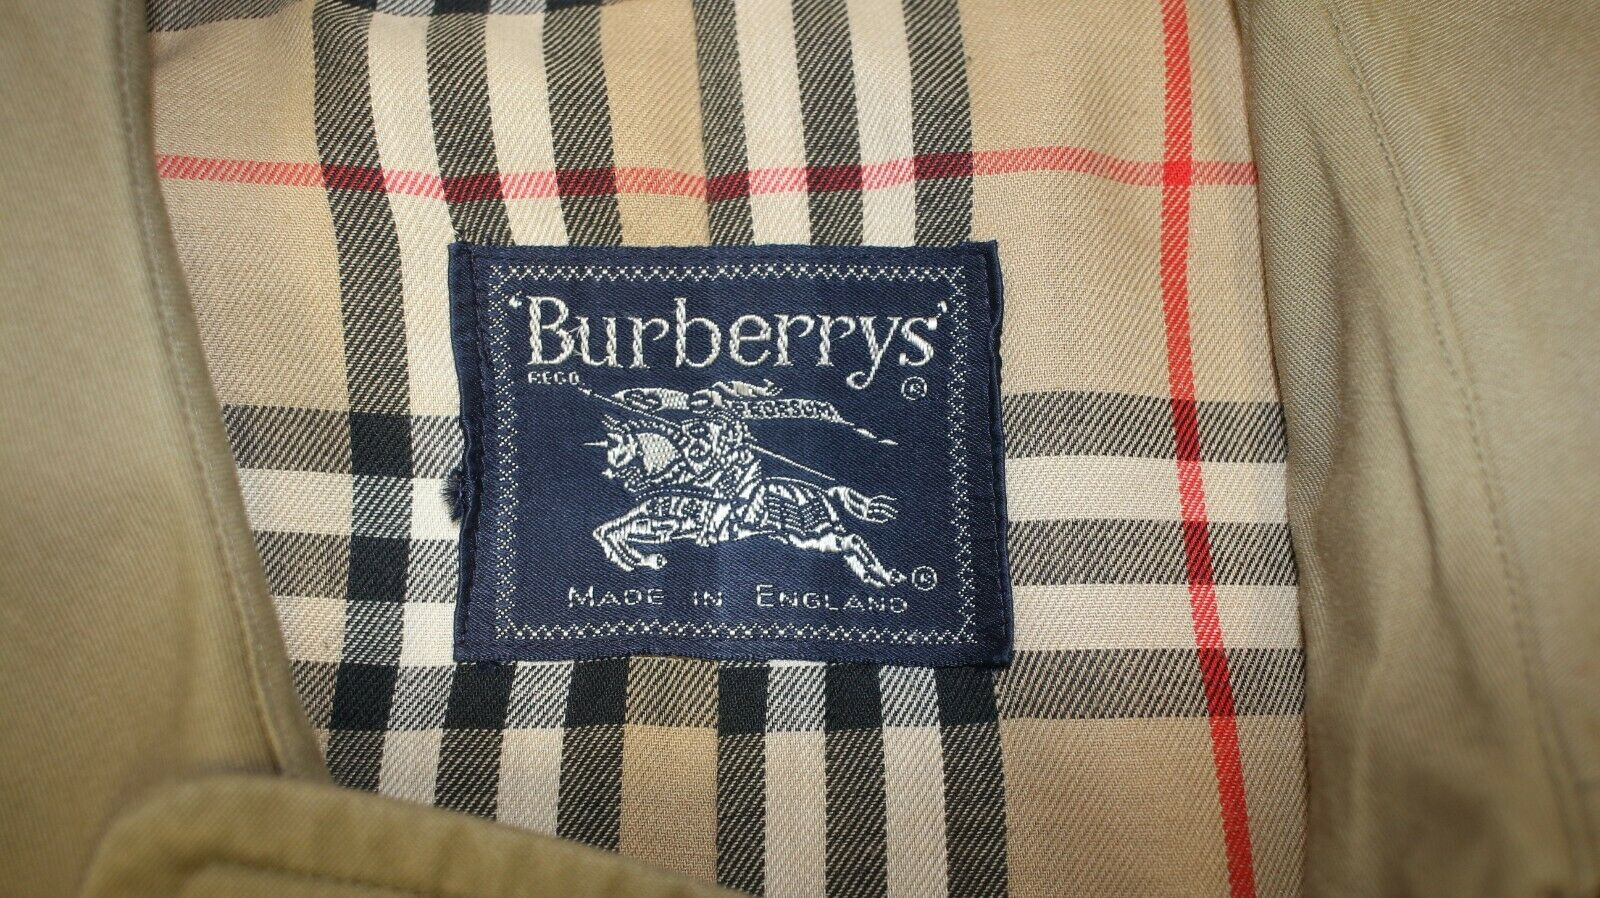 Trench imperméable burberry's vintage kaki clair taille 56 reg made in england